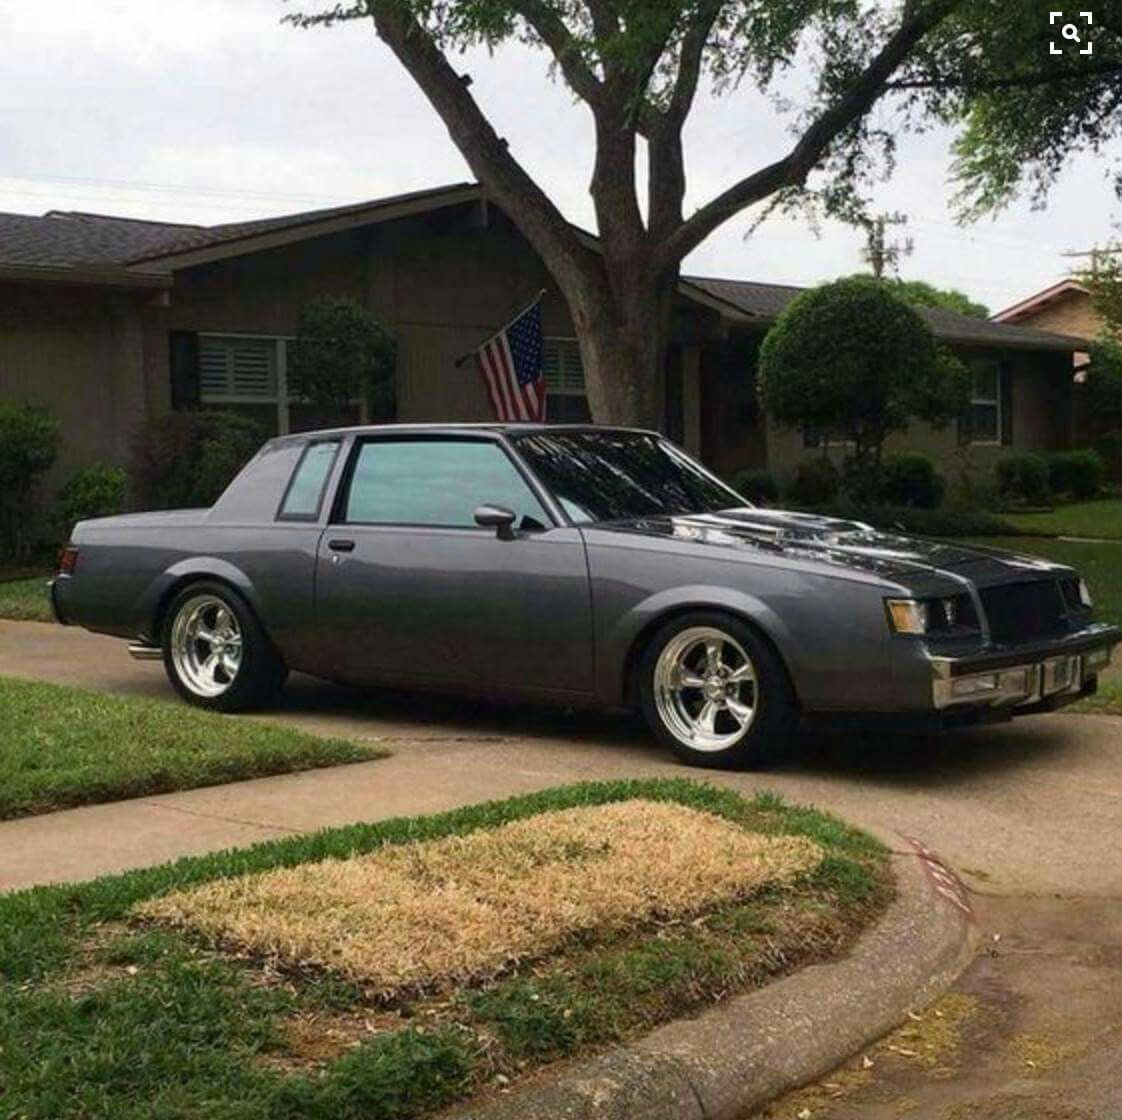 Buick Regal T Type For Sale: Autos BOP, Cadillac, And Holden